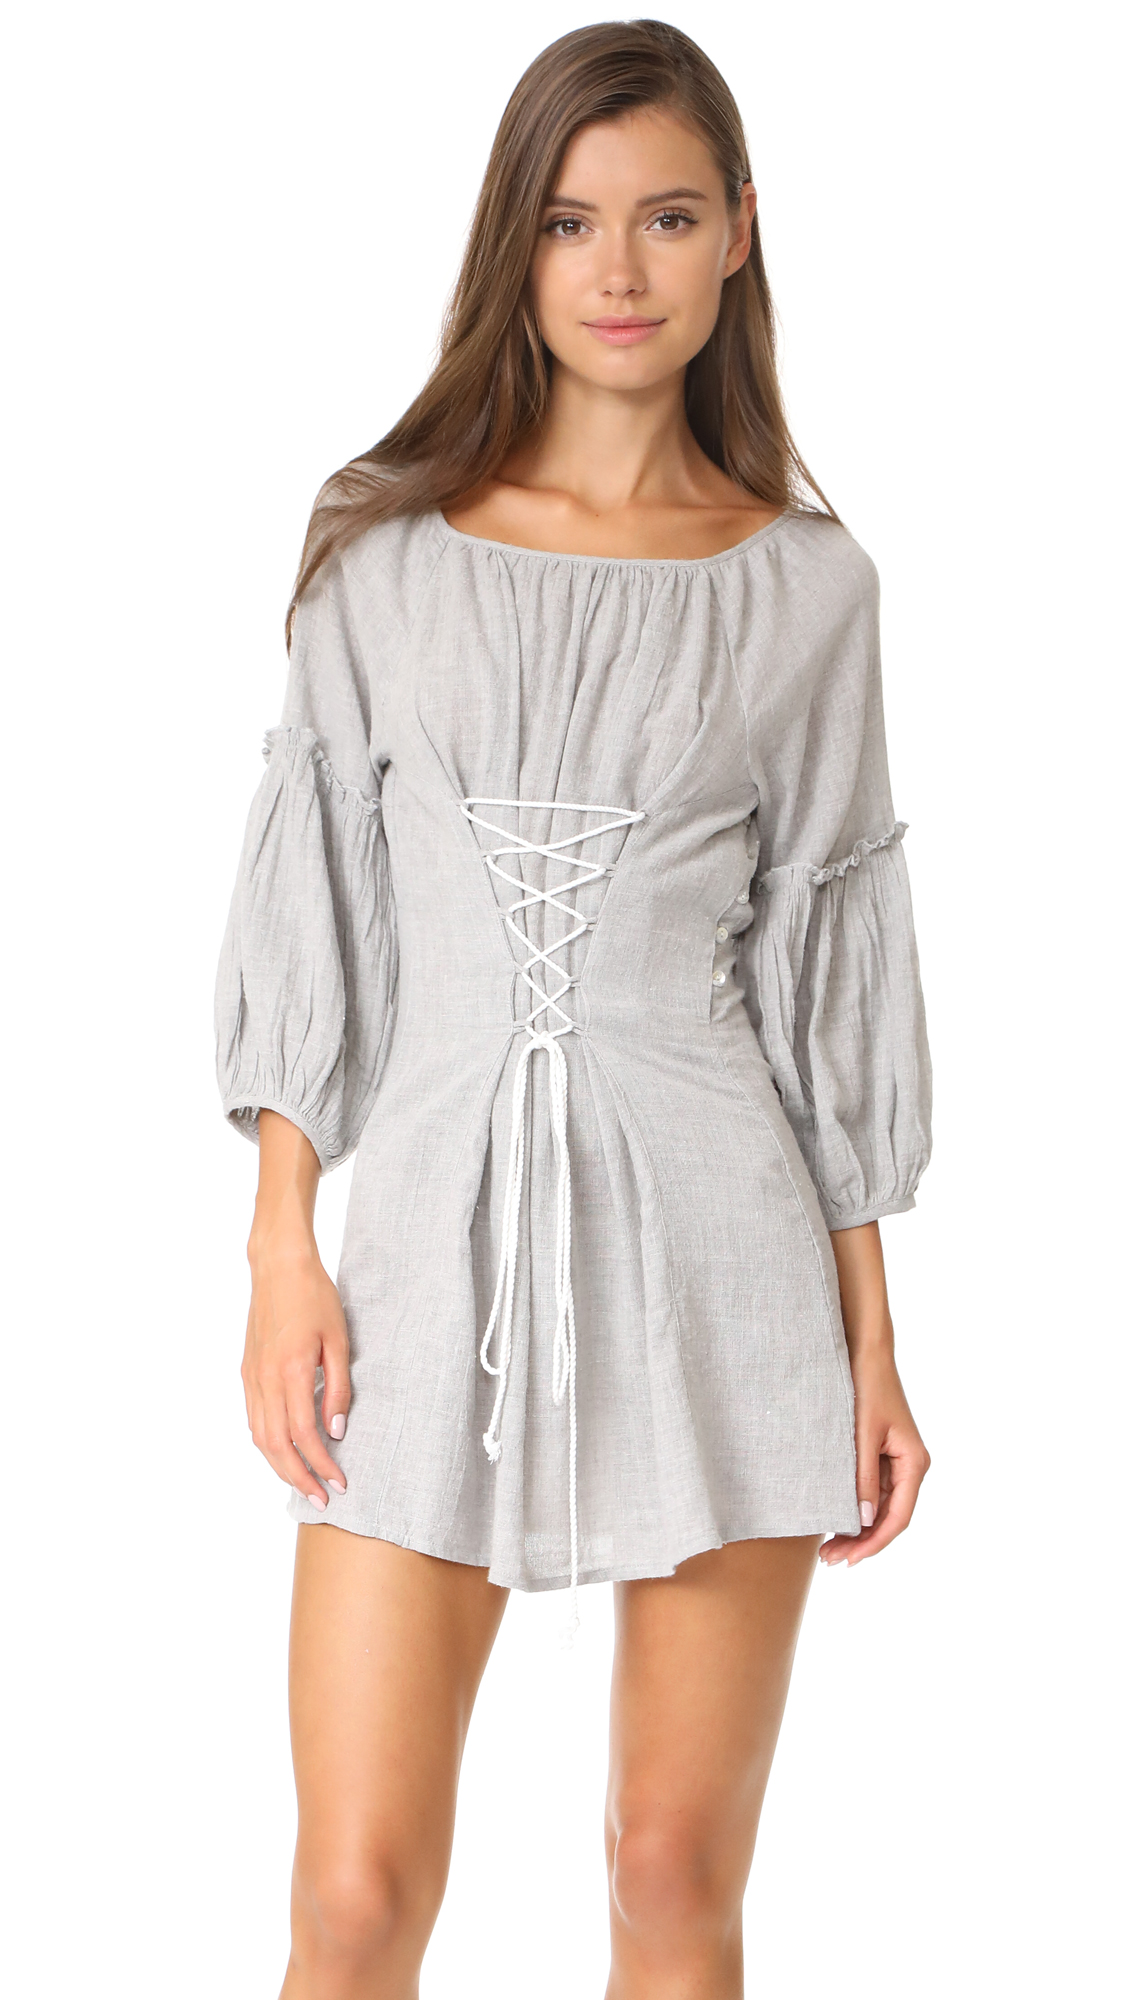 Free People Corsette Mini Dress